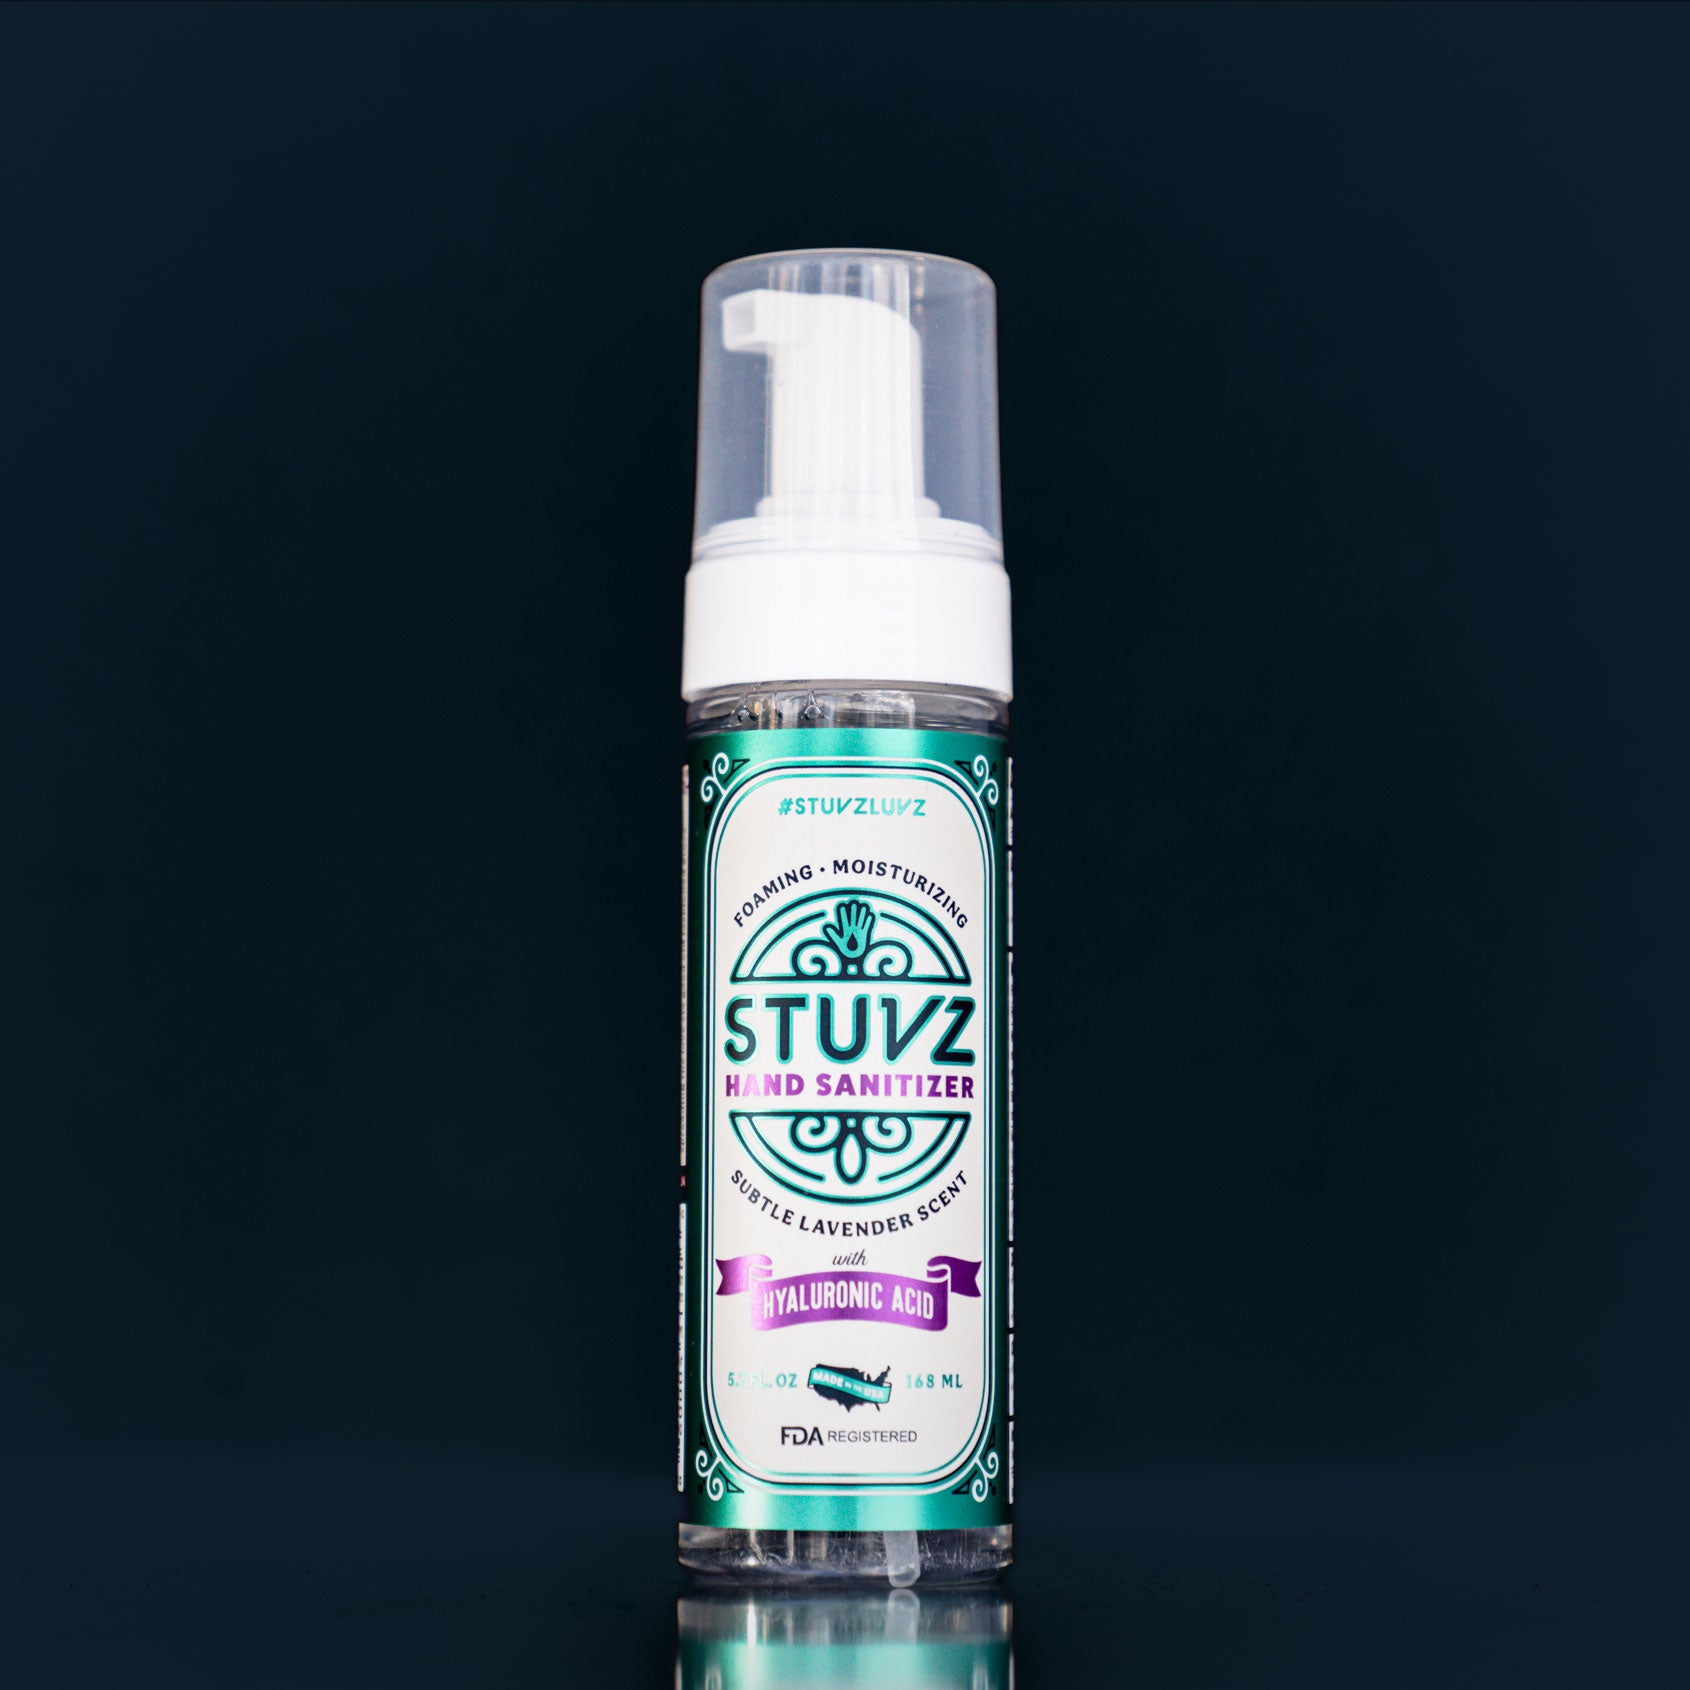 Stuvz Foaming Hand Sanitizer